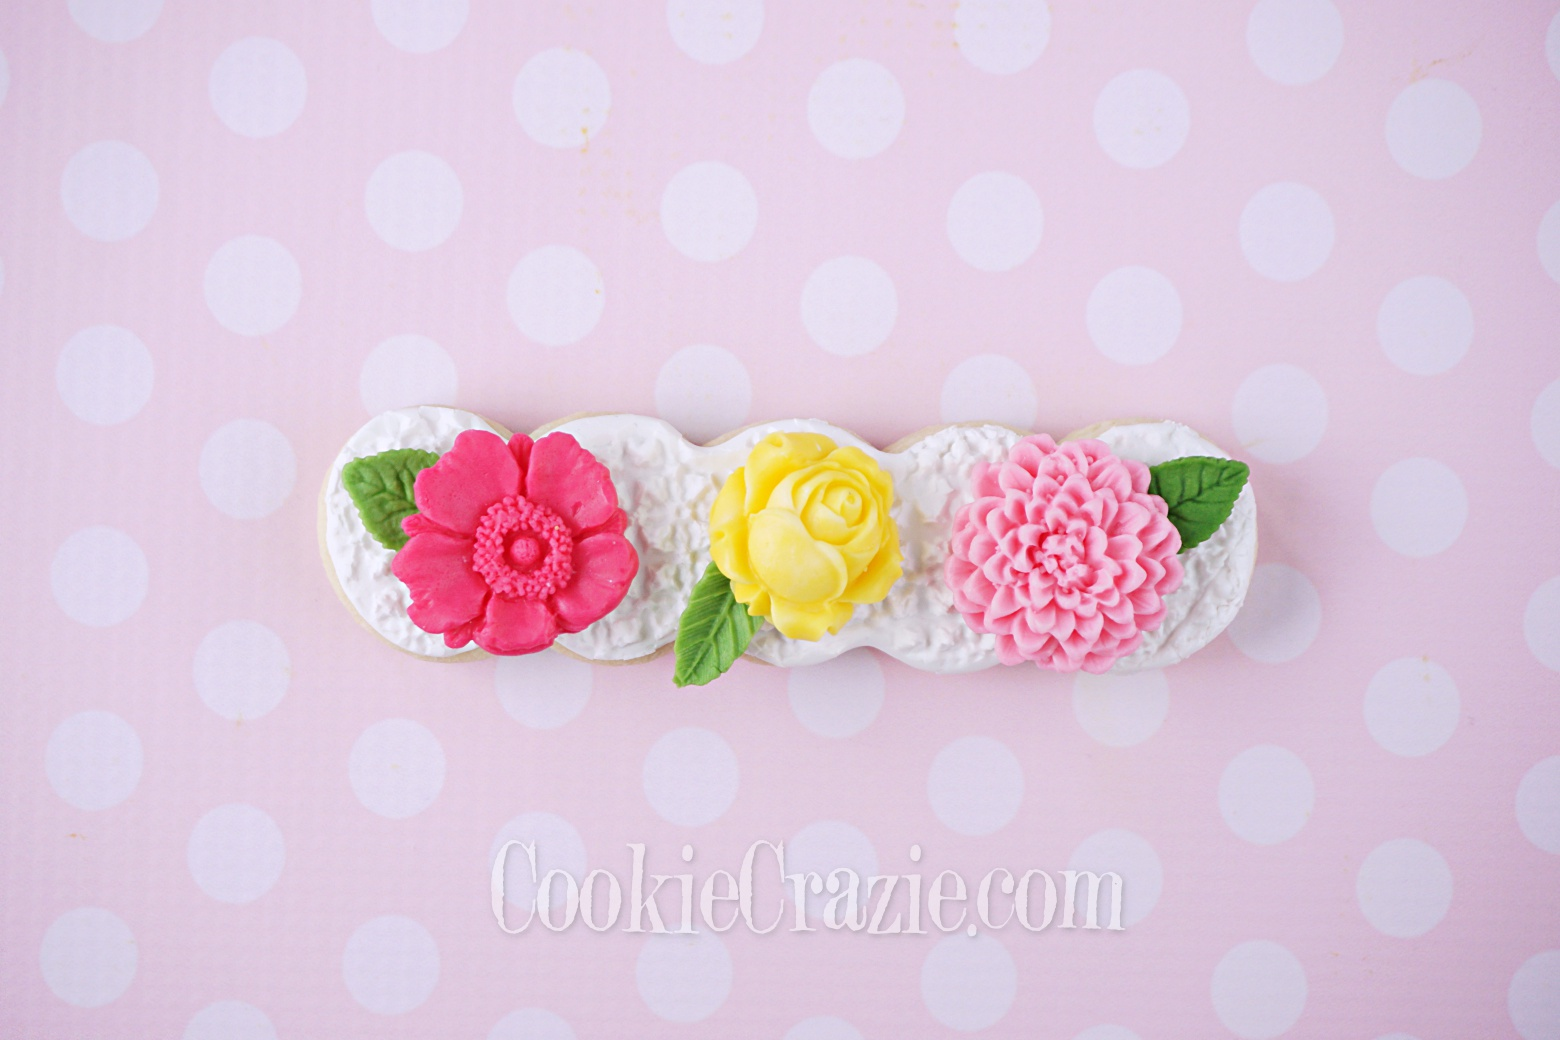 Flower Delight Decorated Sugar Cookie YouTube video  HERE